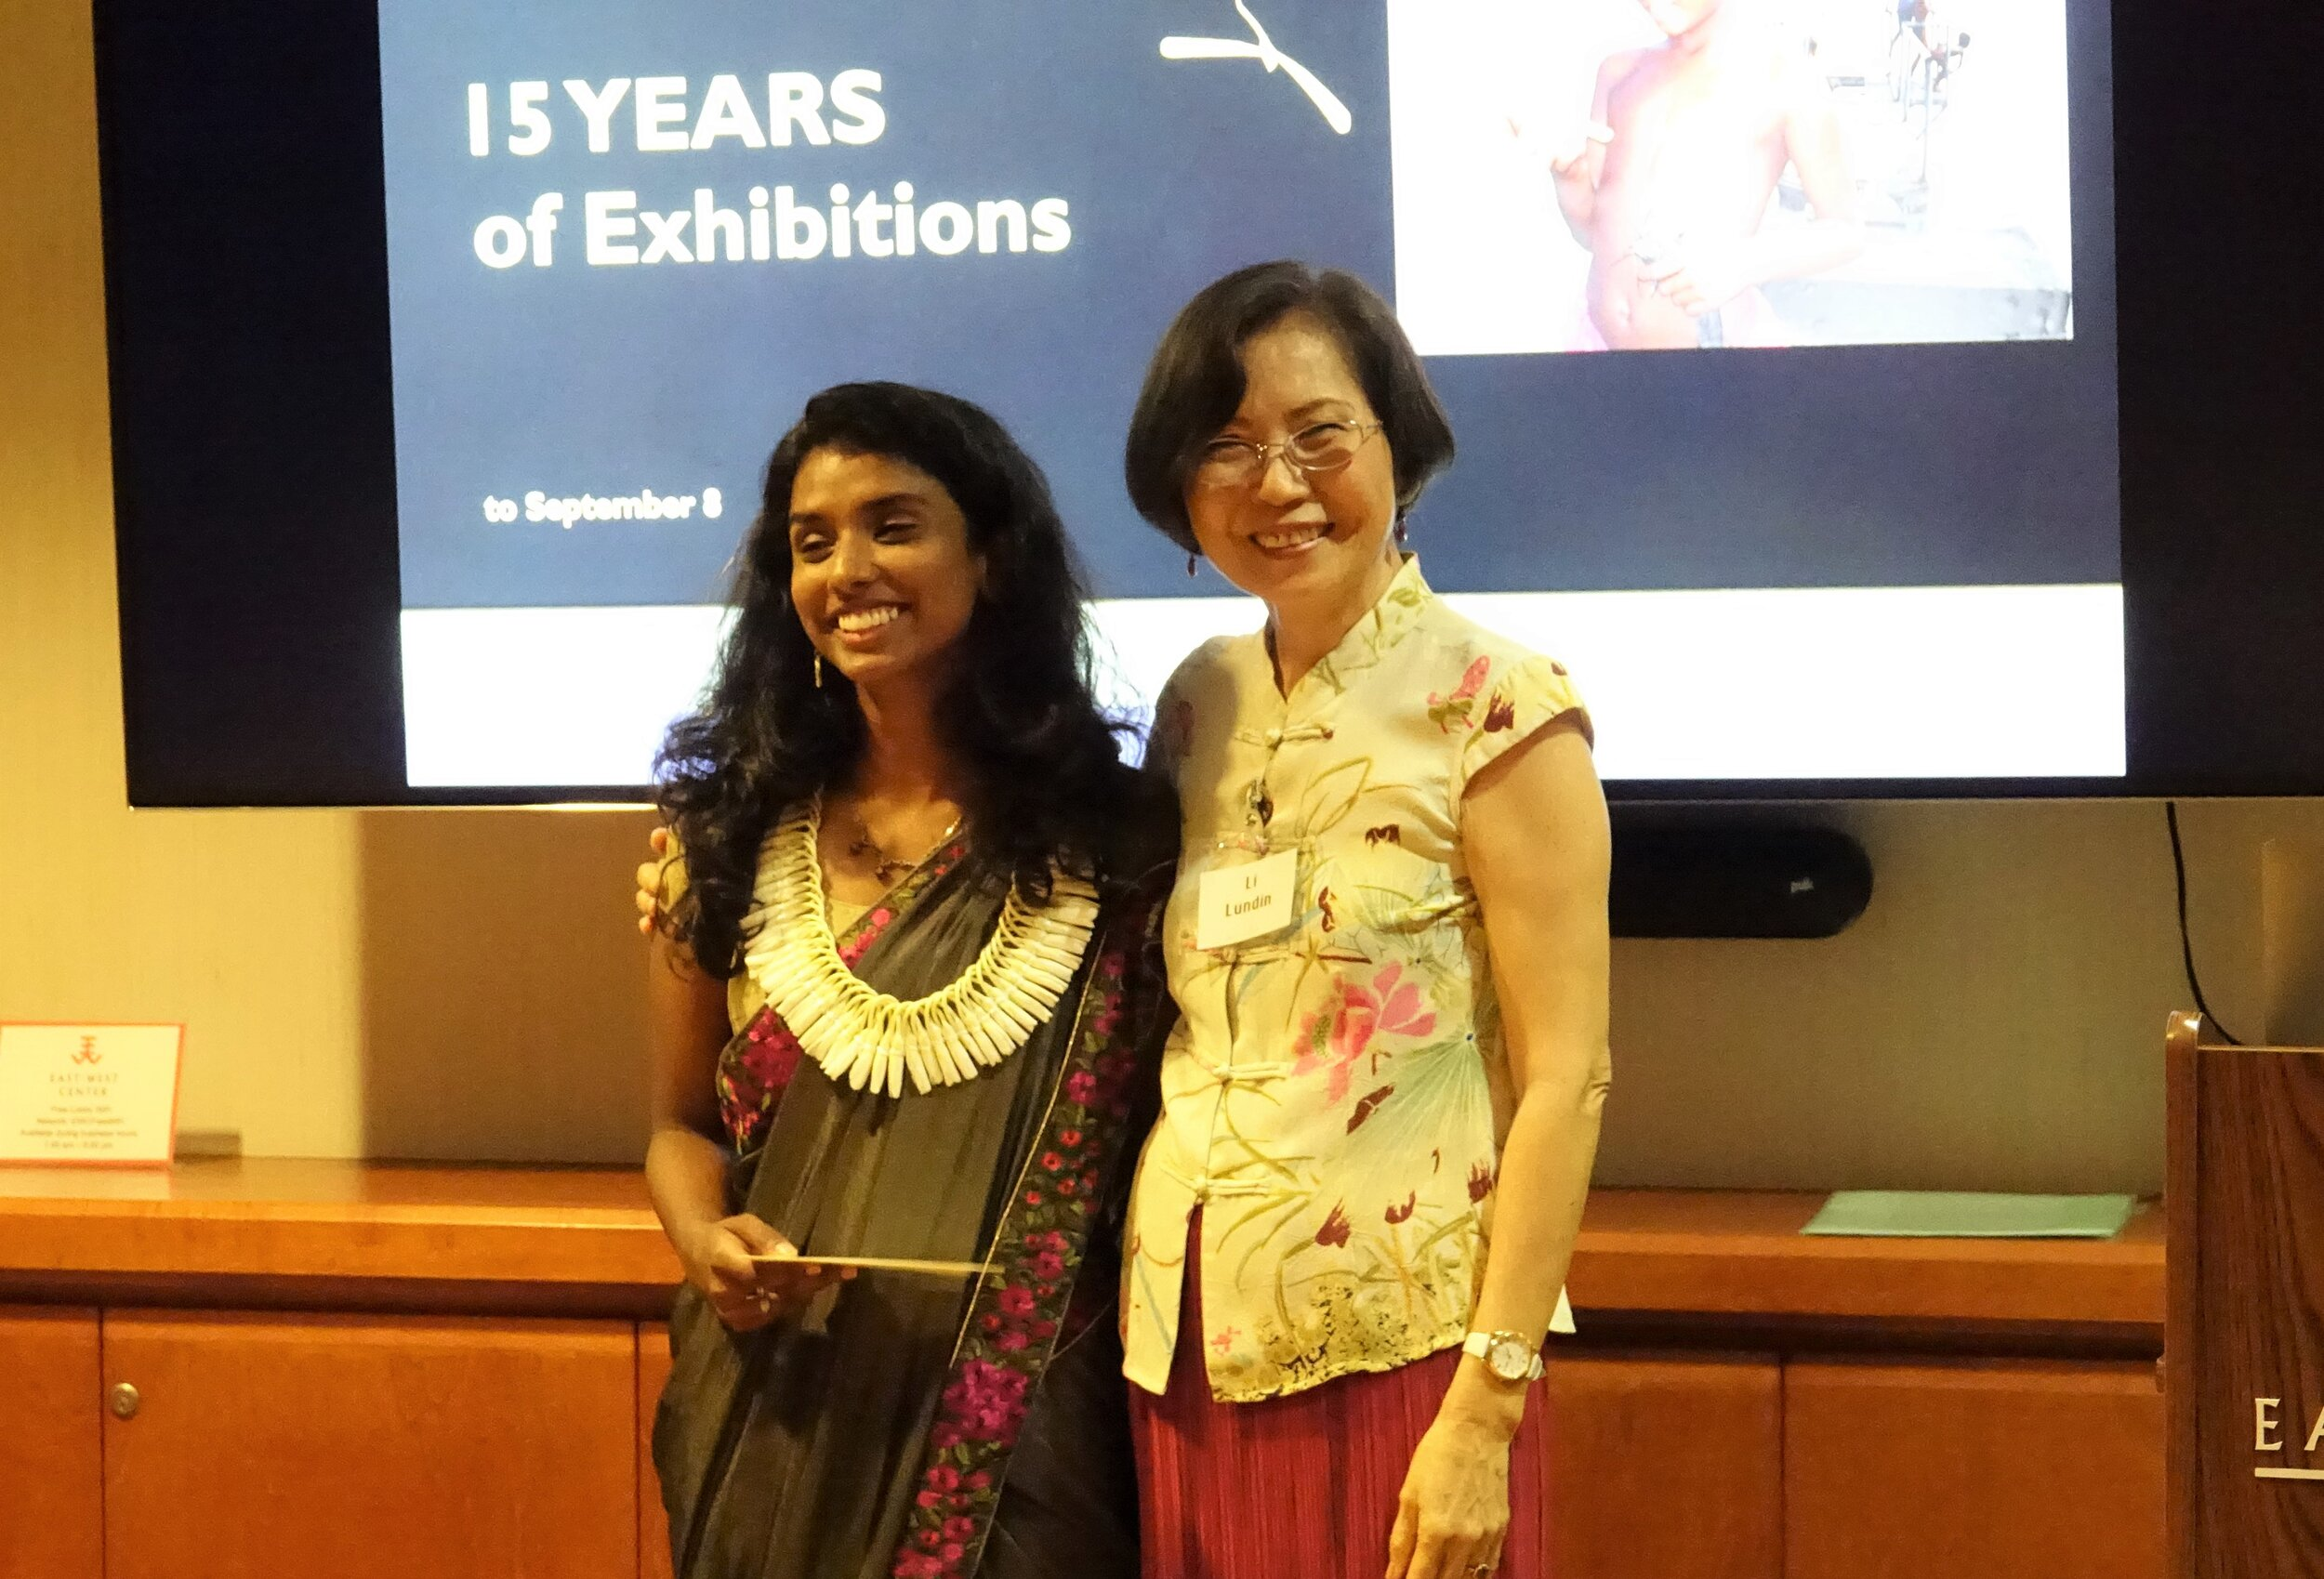 Miss Marina George received the Society's Rhoda E.A. Hackler Scholarship of $1,500 from President Li Lundin for the 2019-2020 academic year. Marina is from India where she worked as a disability rights advocate and researcher, studying the effects of government education and health policies on Inclusive Education for children with disabilities within five states, across rural and urban settings. At UH, Manoa she is pursuing a Master's degree in art history in South Asia. Prior to coming to Hawaii, she did a Graduate Internship at The Metropolitan Museum of Art in New York City.